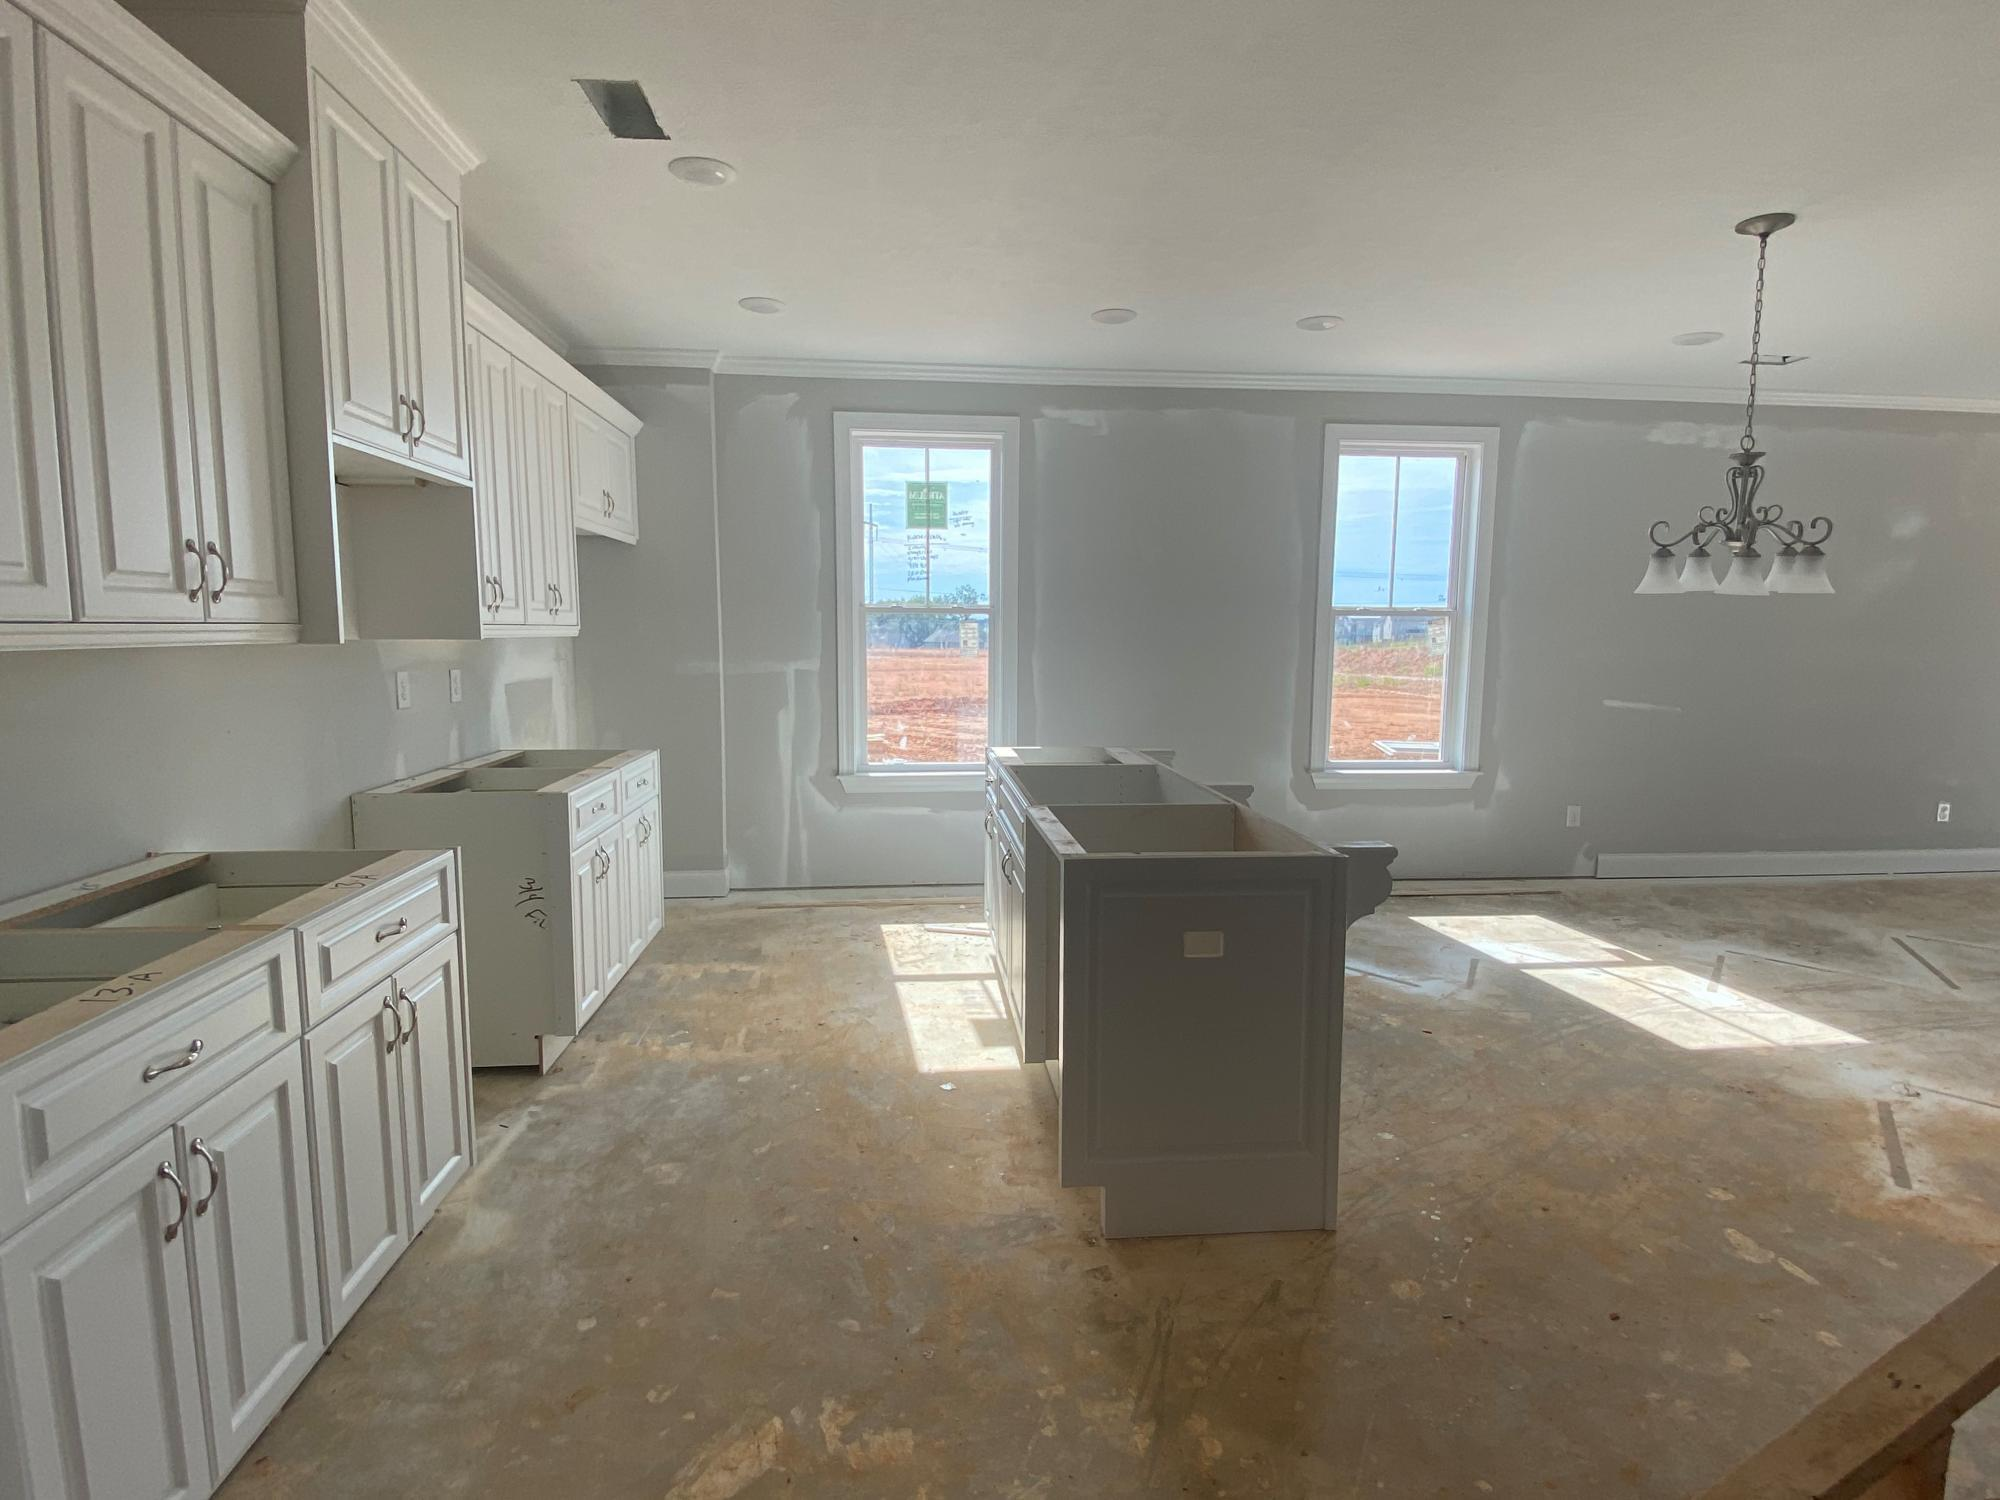 Kitchen featured in the Emerson 4 Bedroom Townhome By Ivey Residential in Augusta, GA